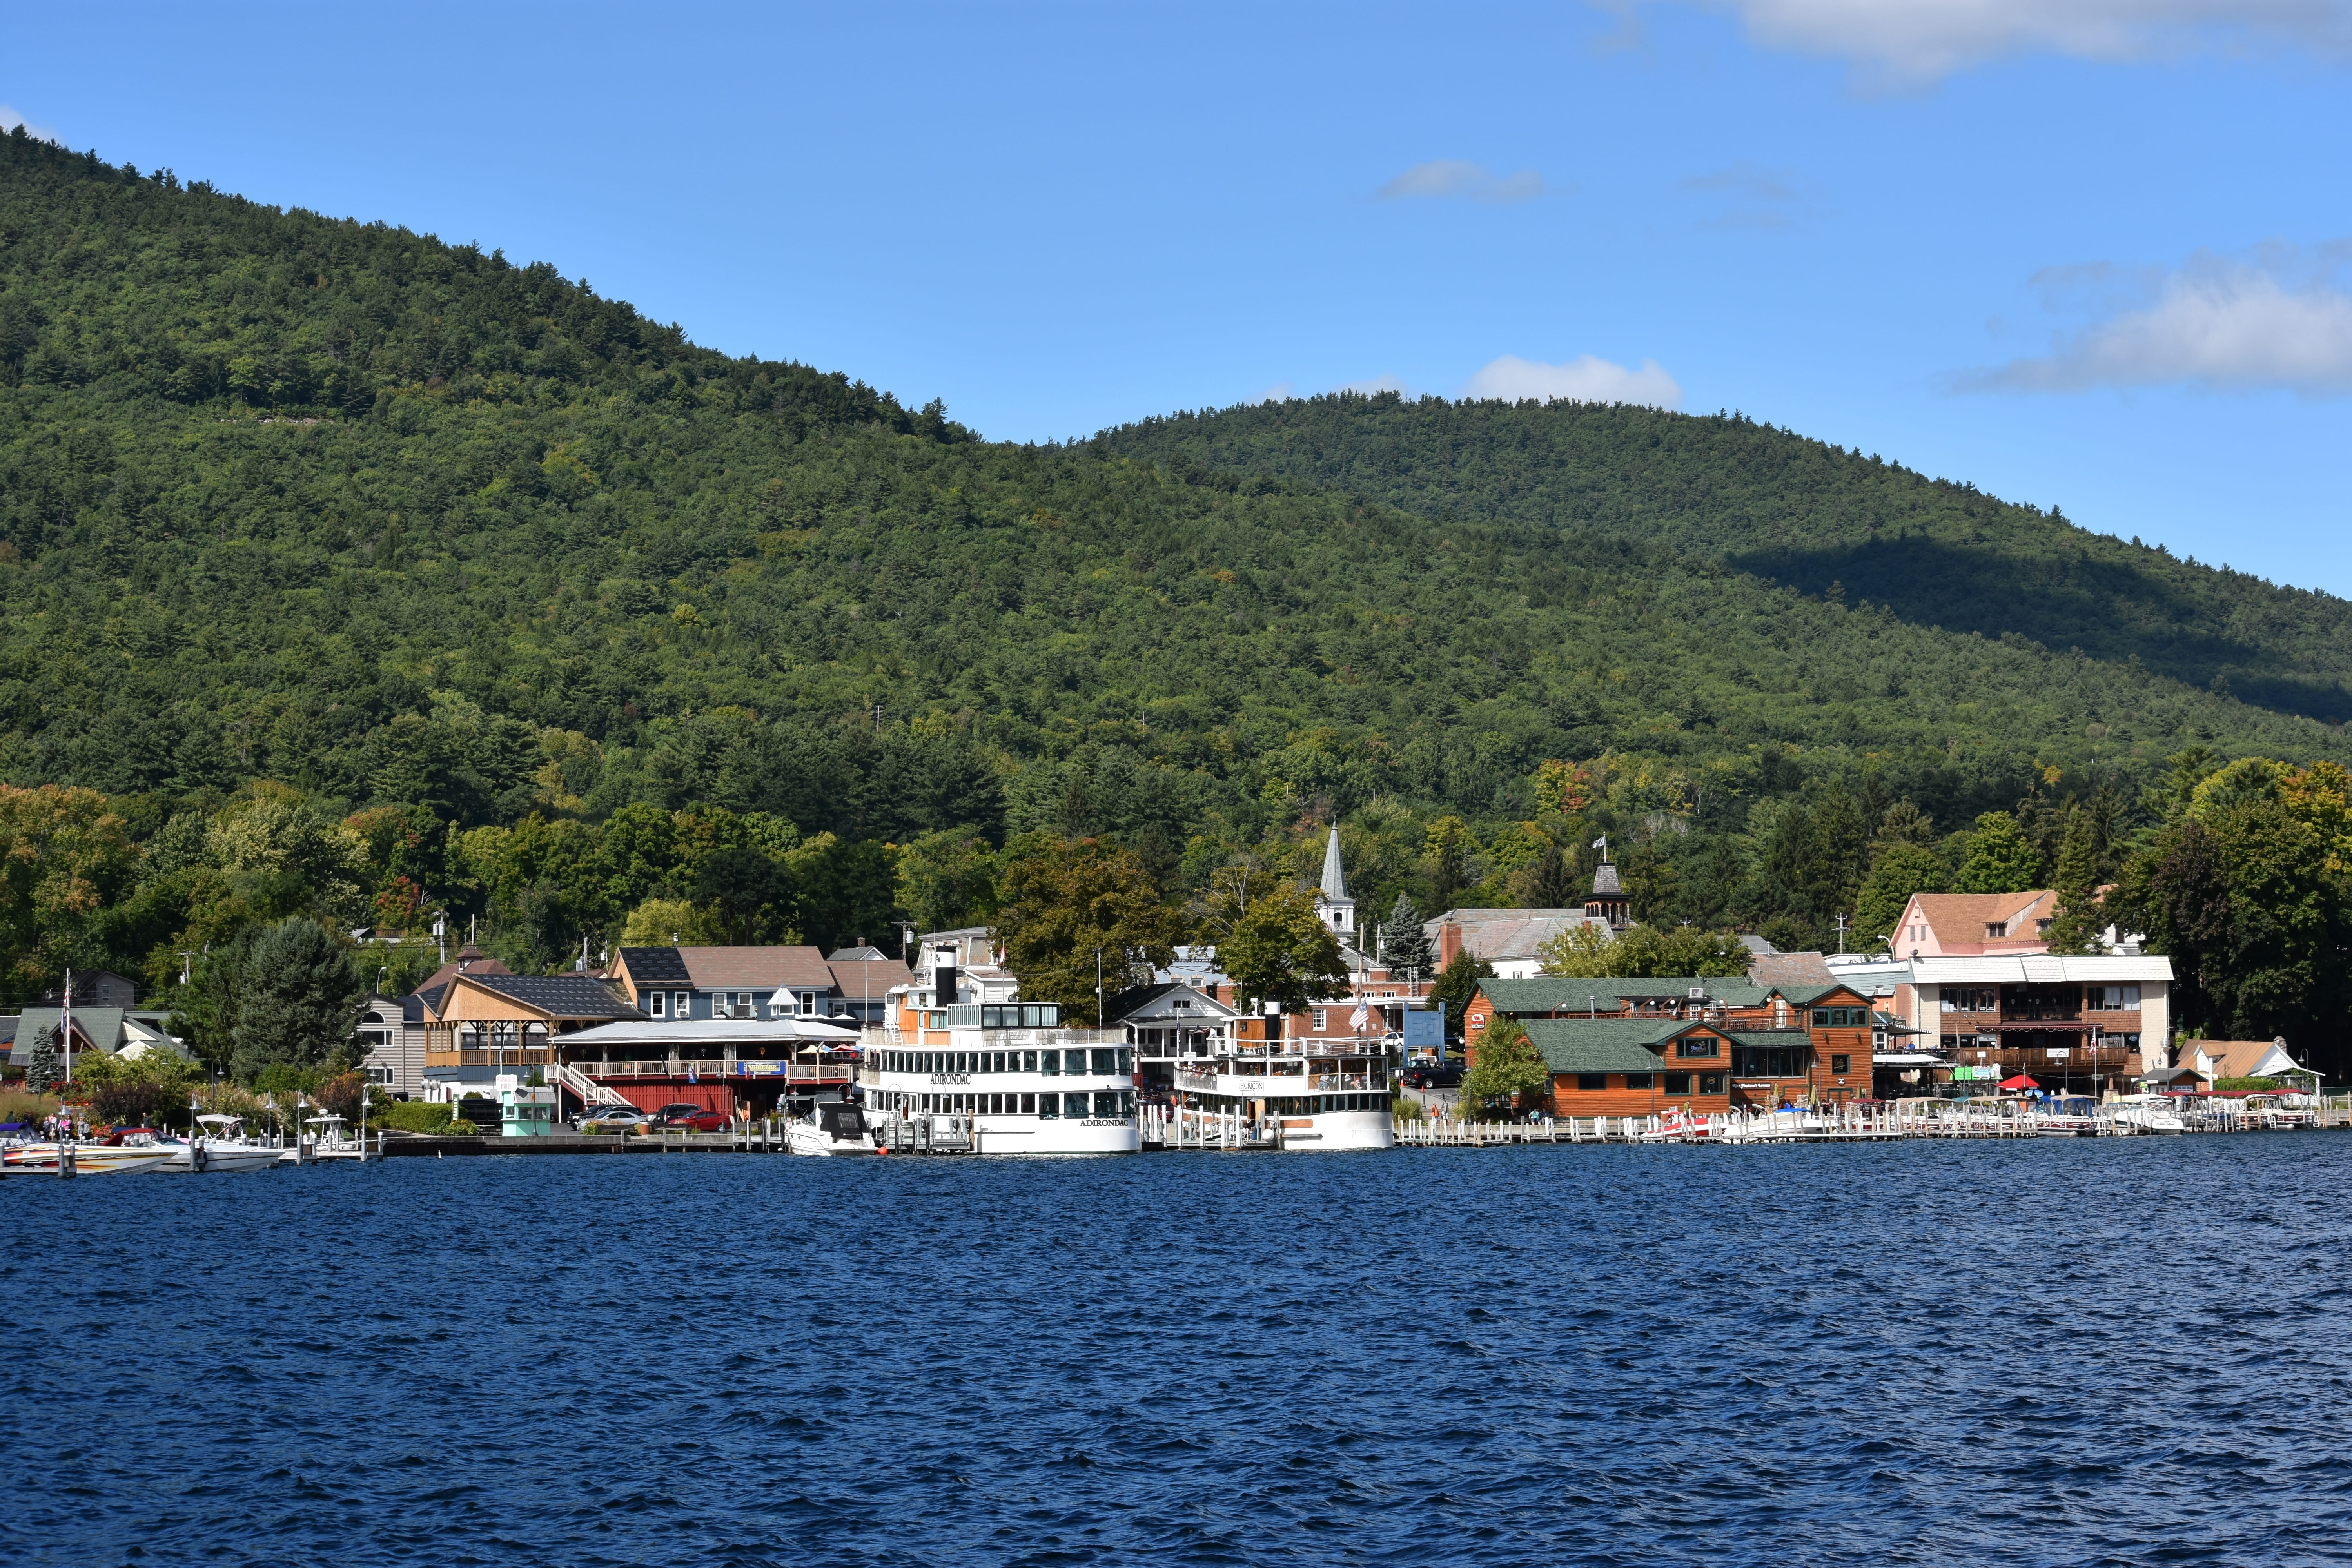 Waterside town on Lake George.